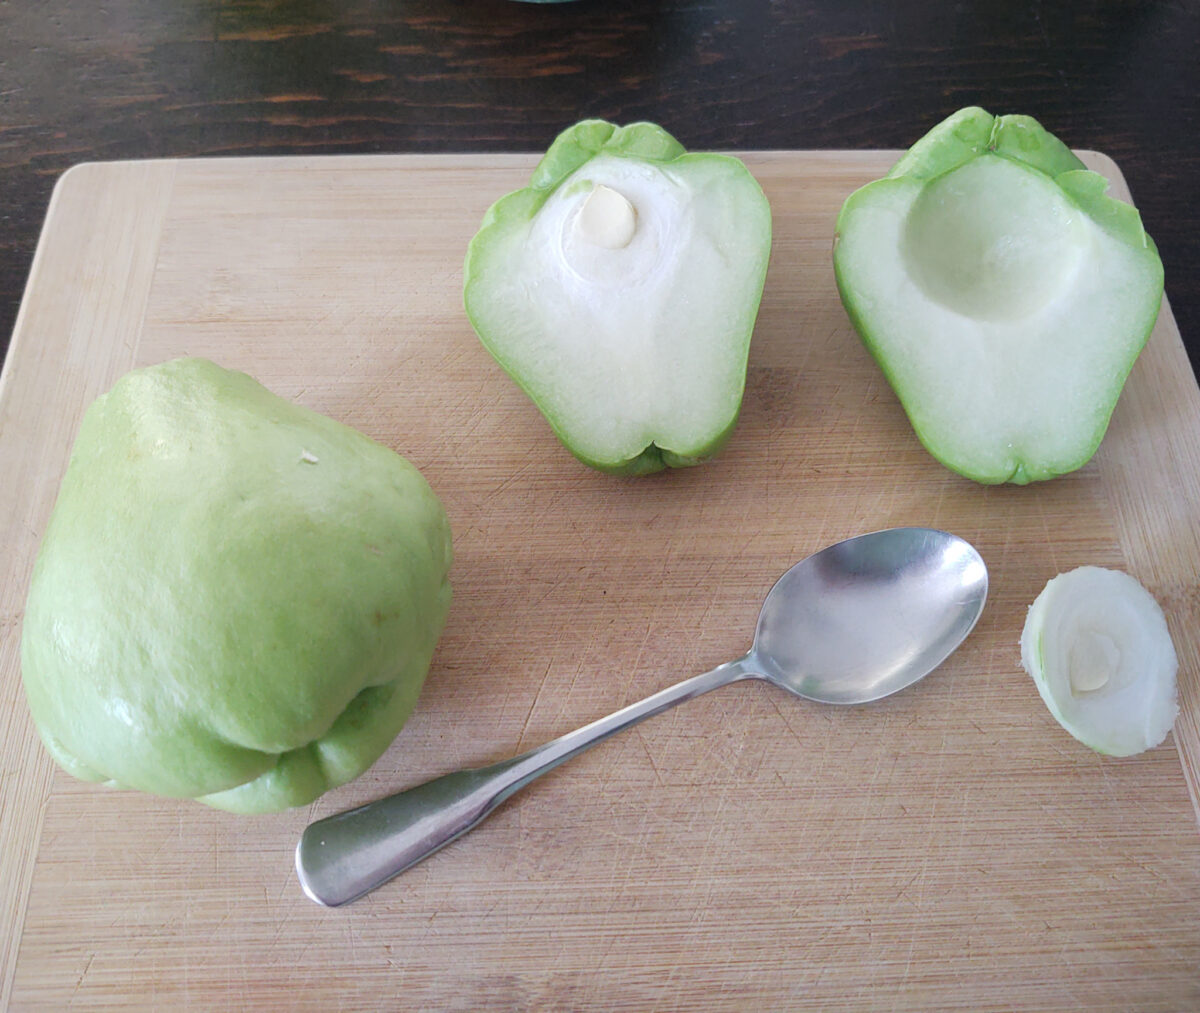 cleaned and cut open chayote